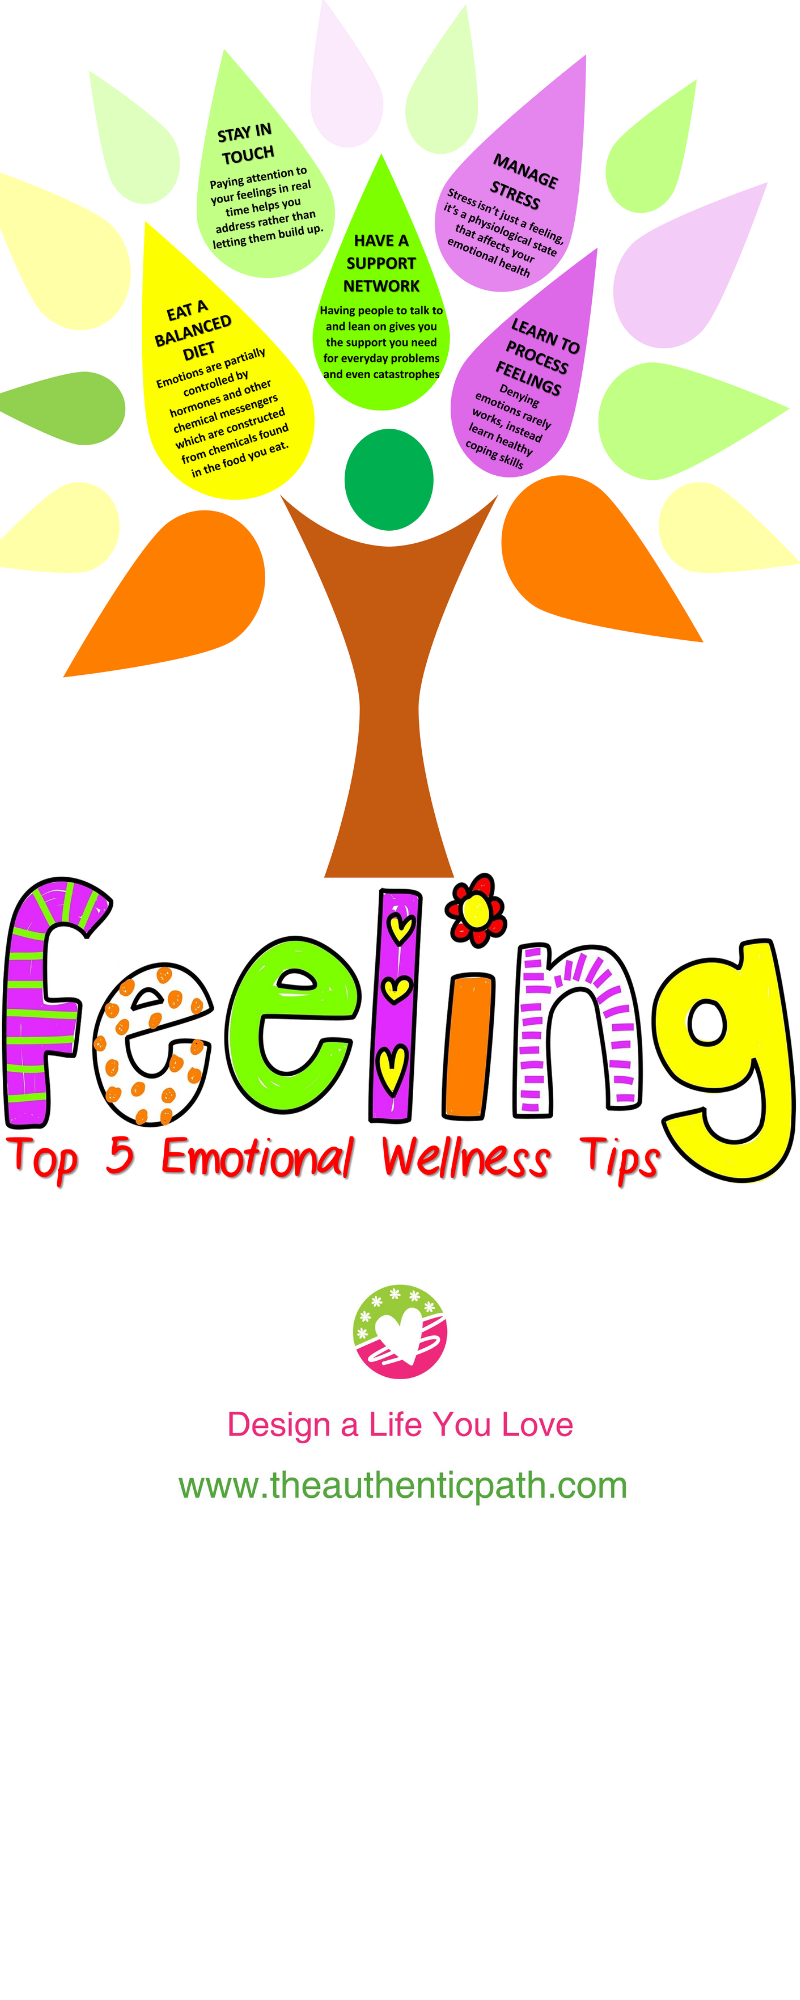 5 Top Emotional Wellness Tips.png